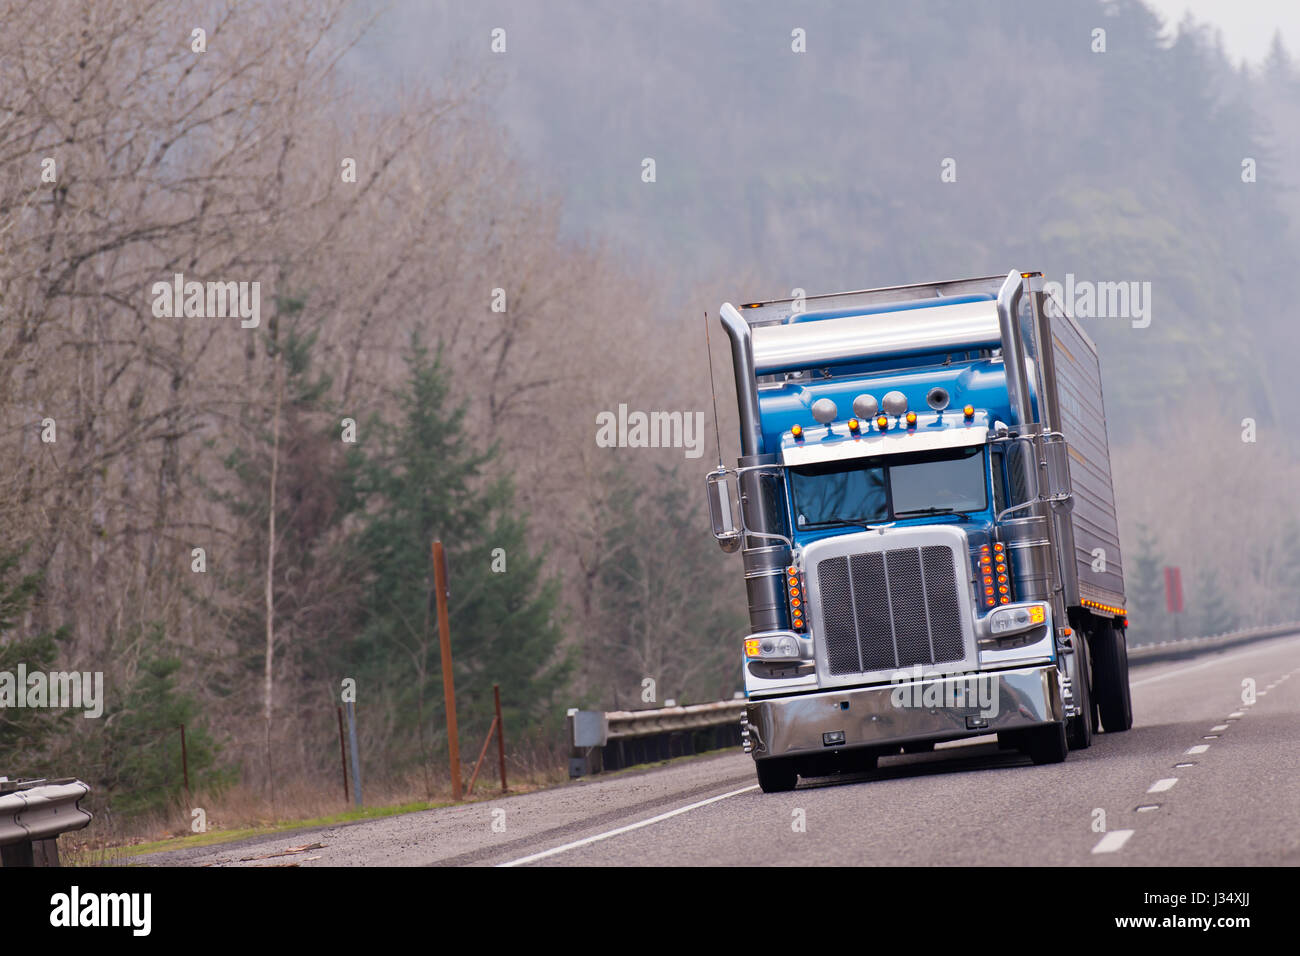 big classic rig semi truck with reefer semi trailer in blue driving on hiway with forest